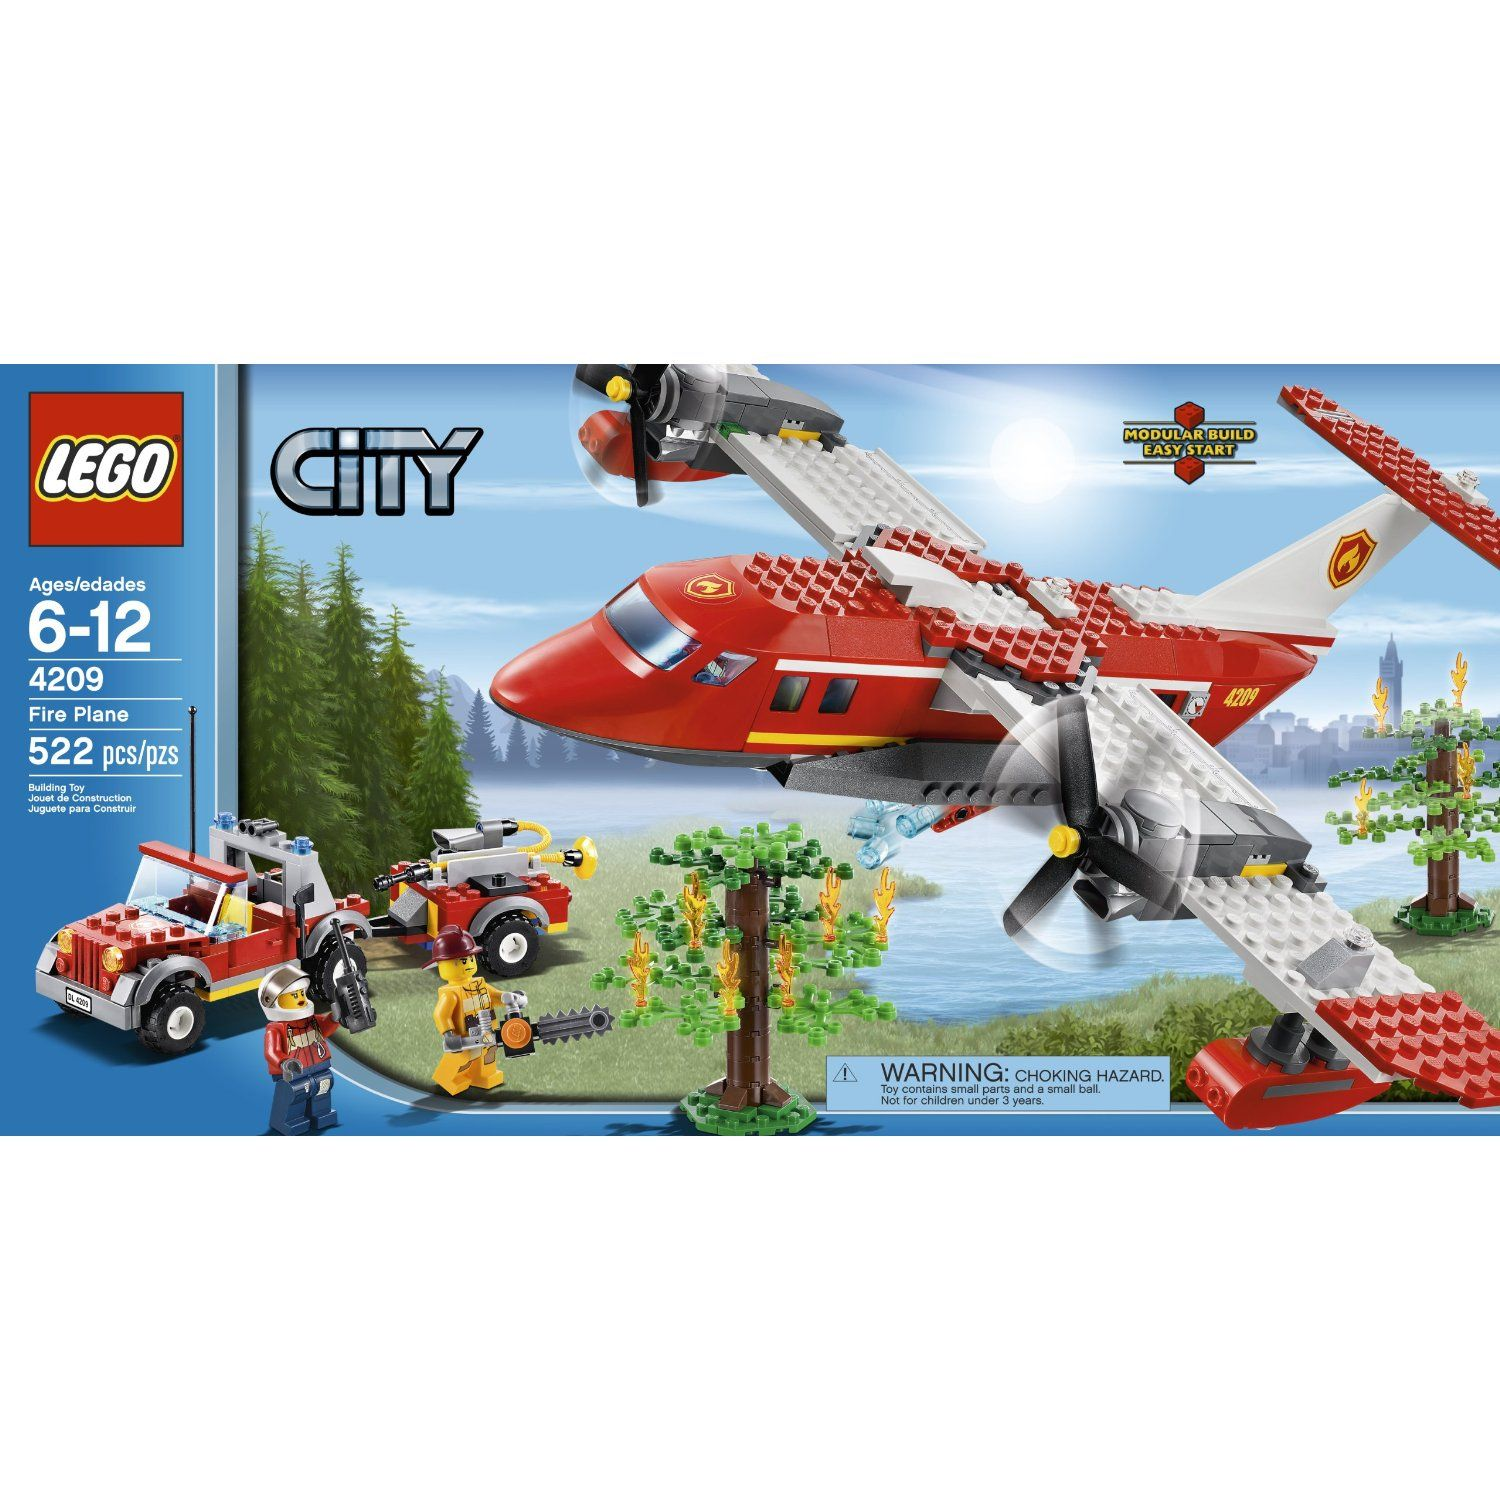 Walmart Helicopter Toys For Boys : Lego city sets best of toys